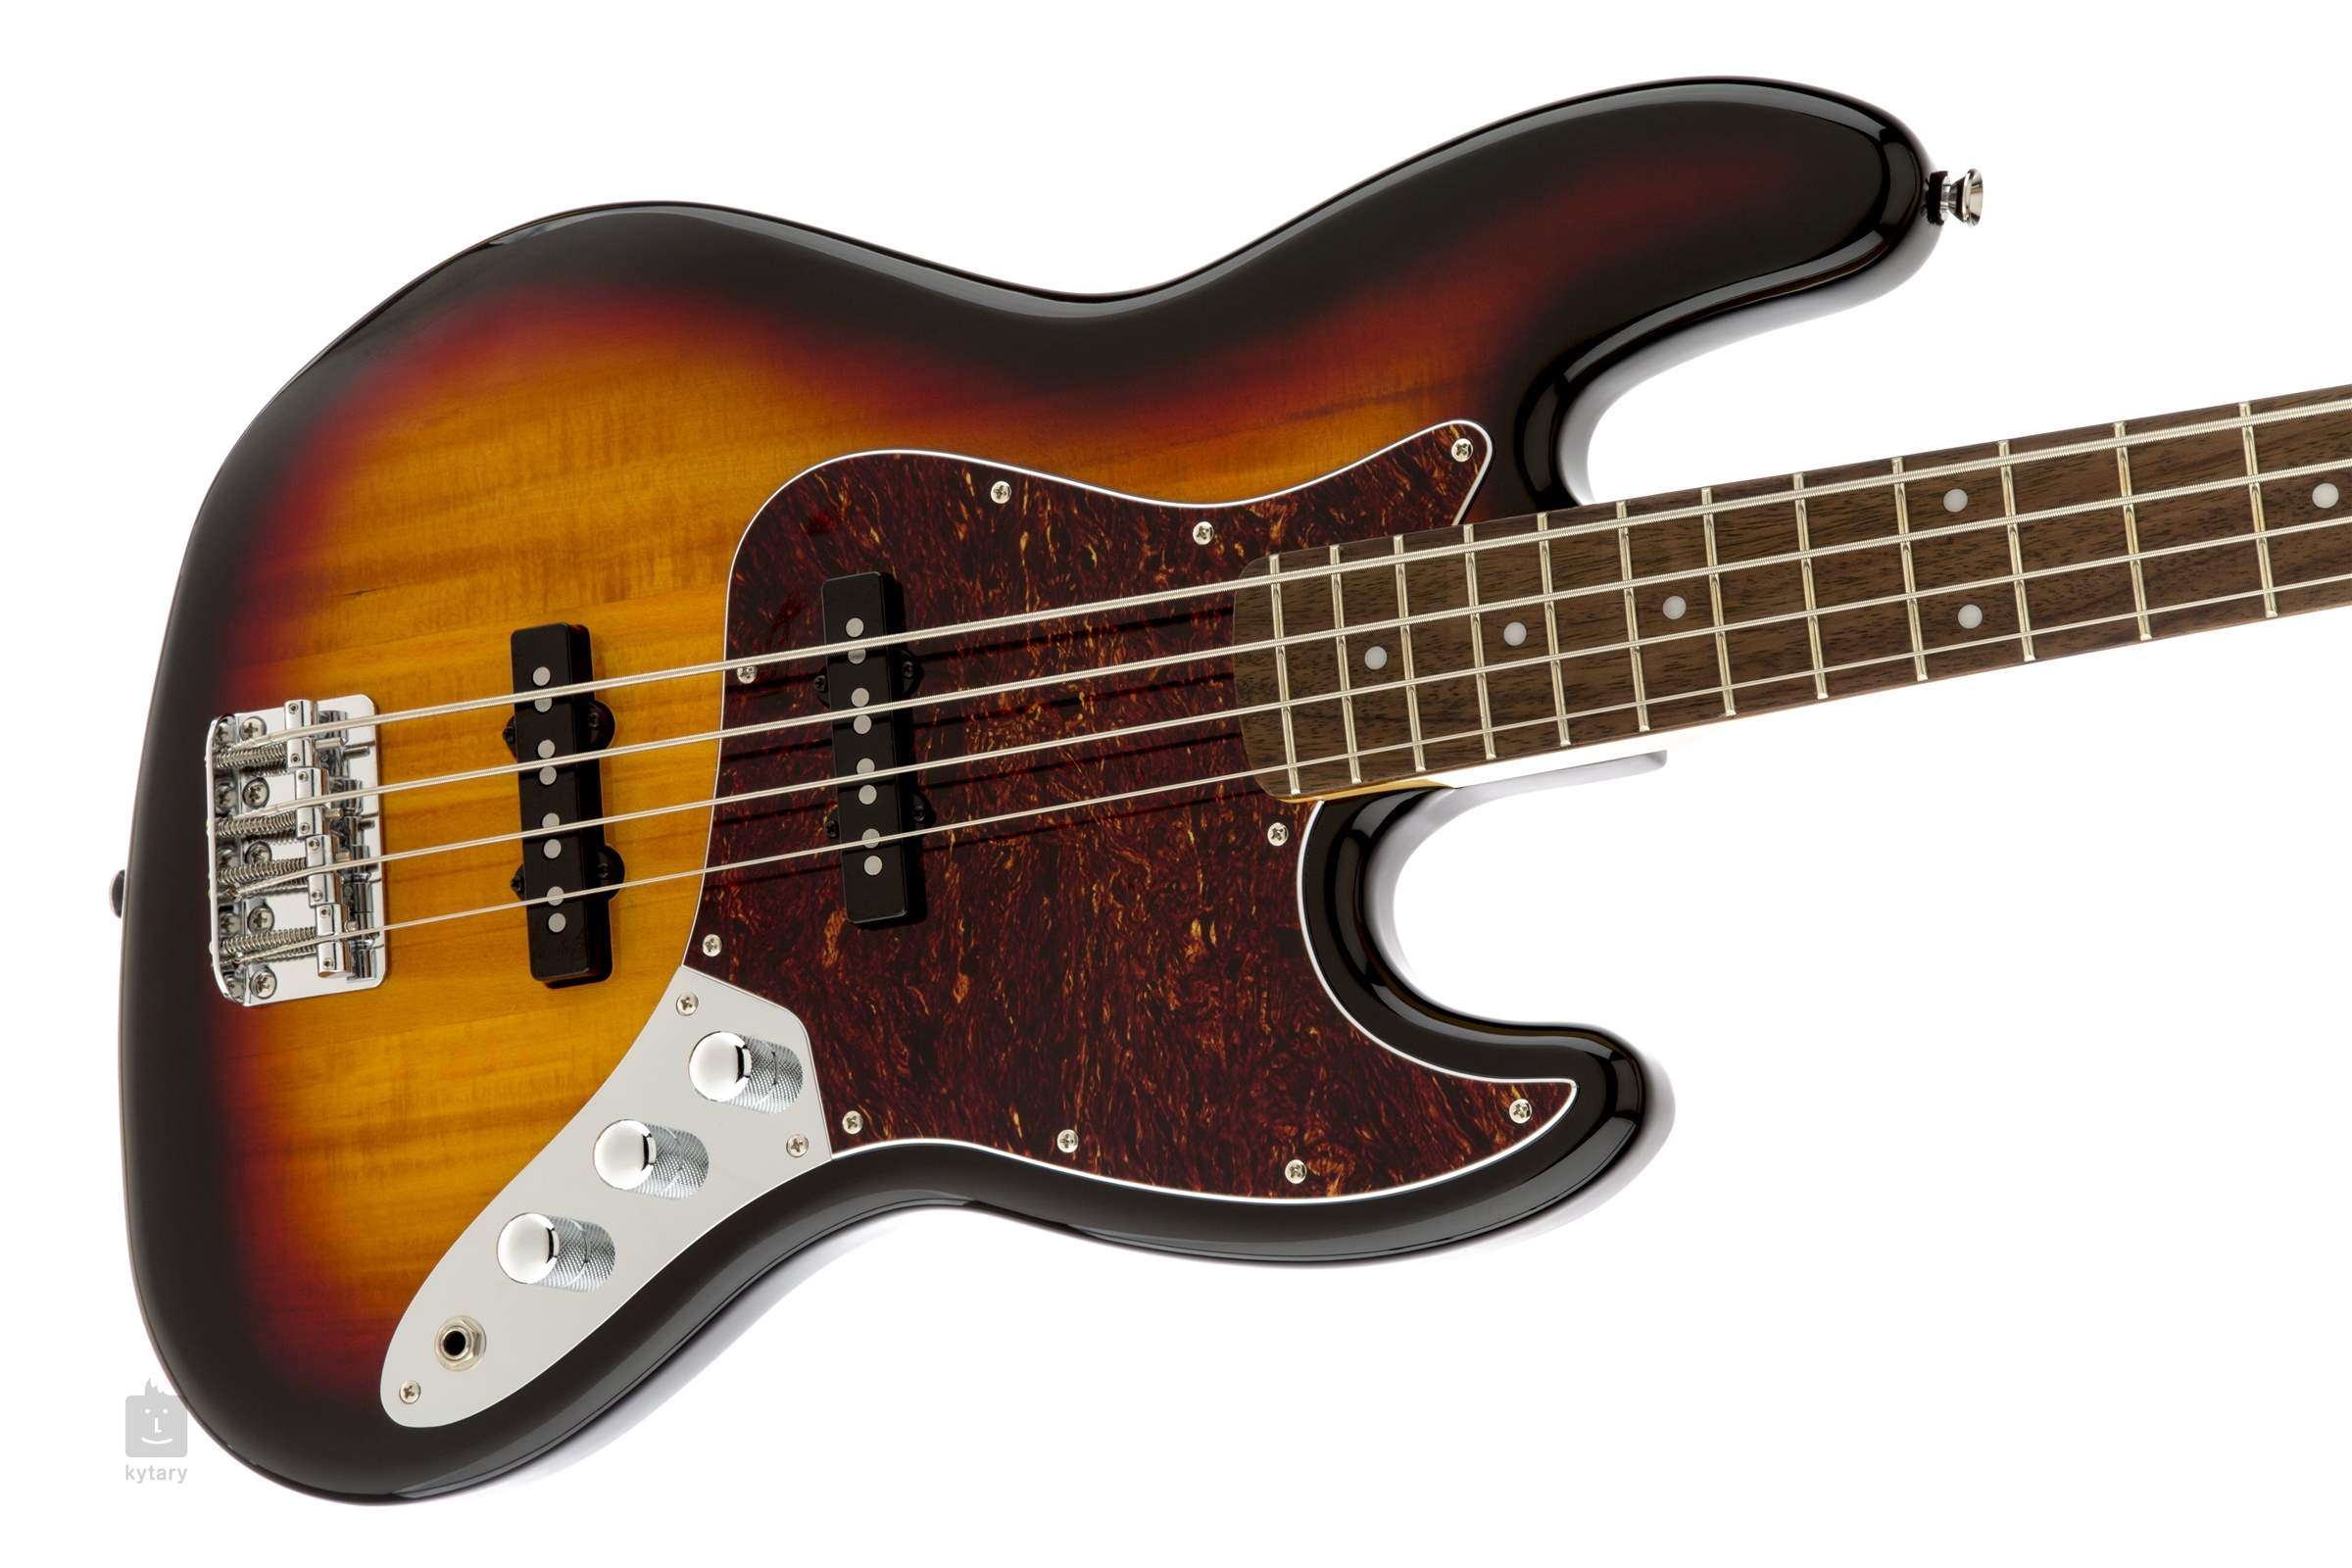 Fender Squier Vintage Modified Jazz Bass 3ts Elektryczna